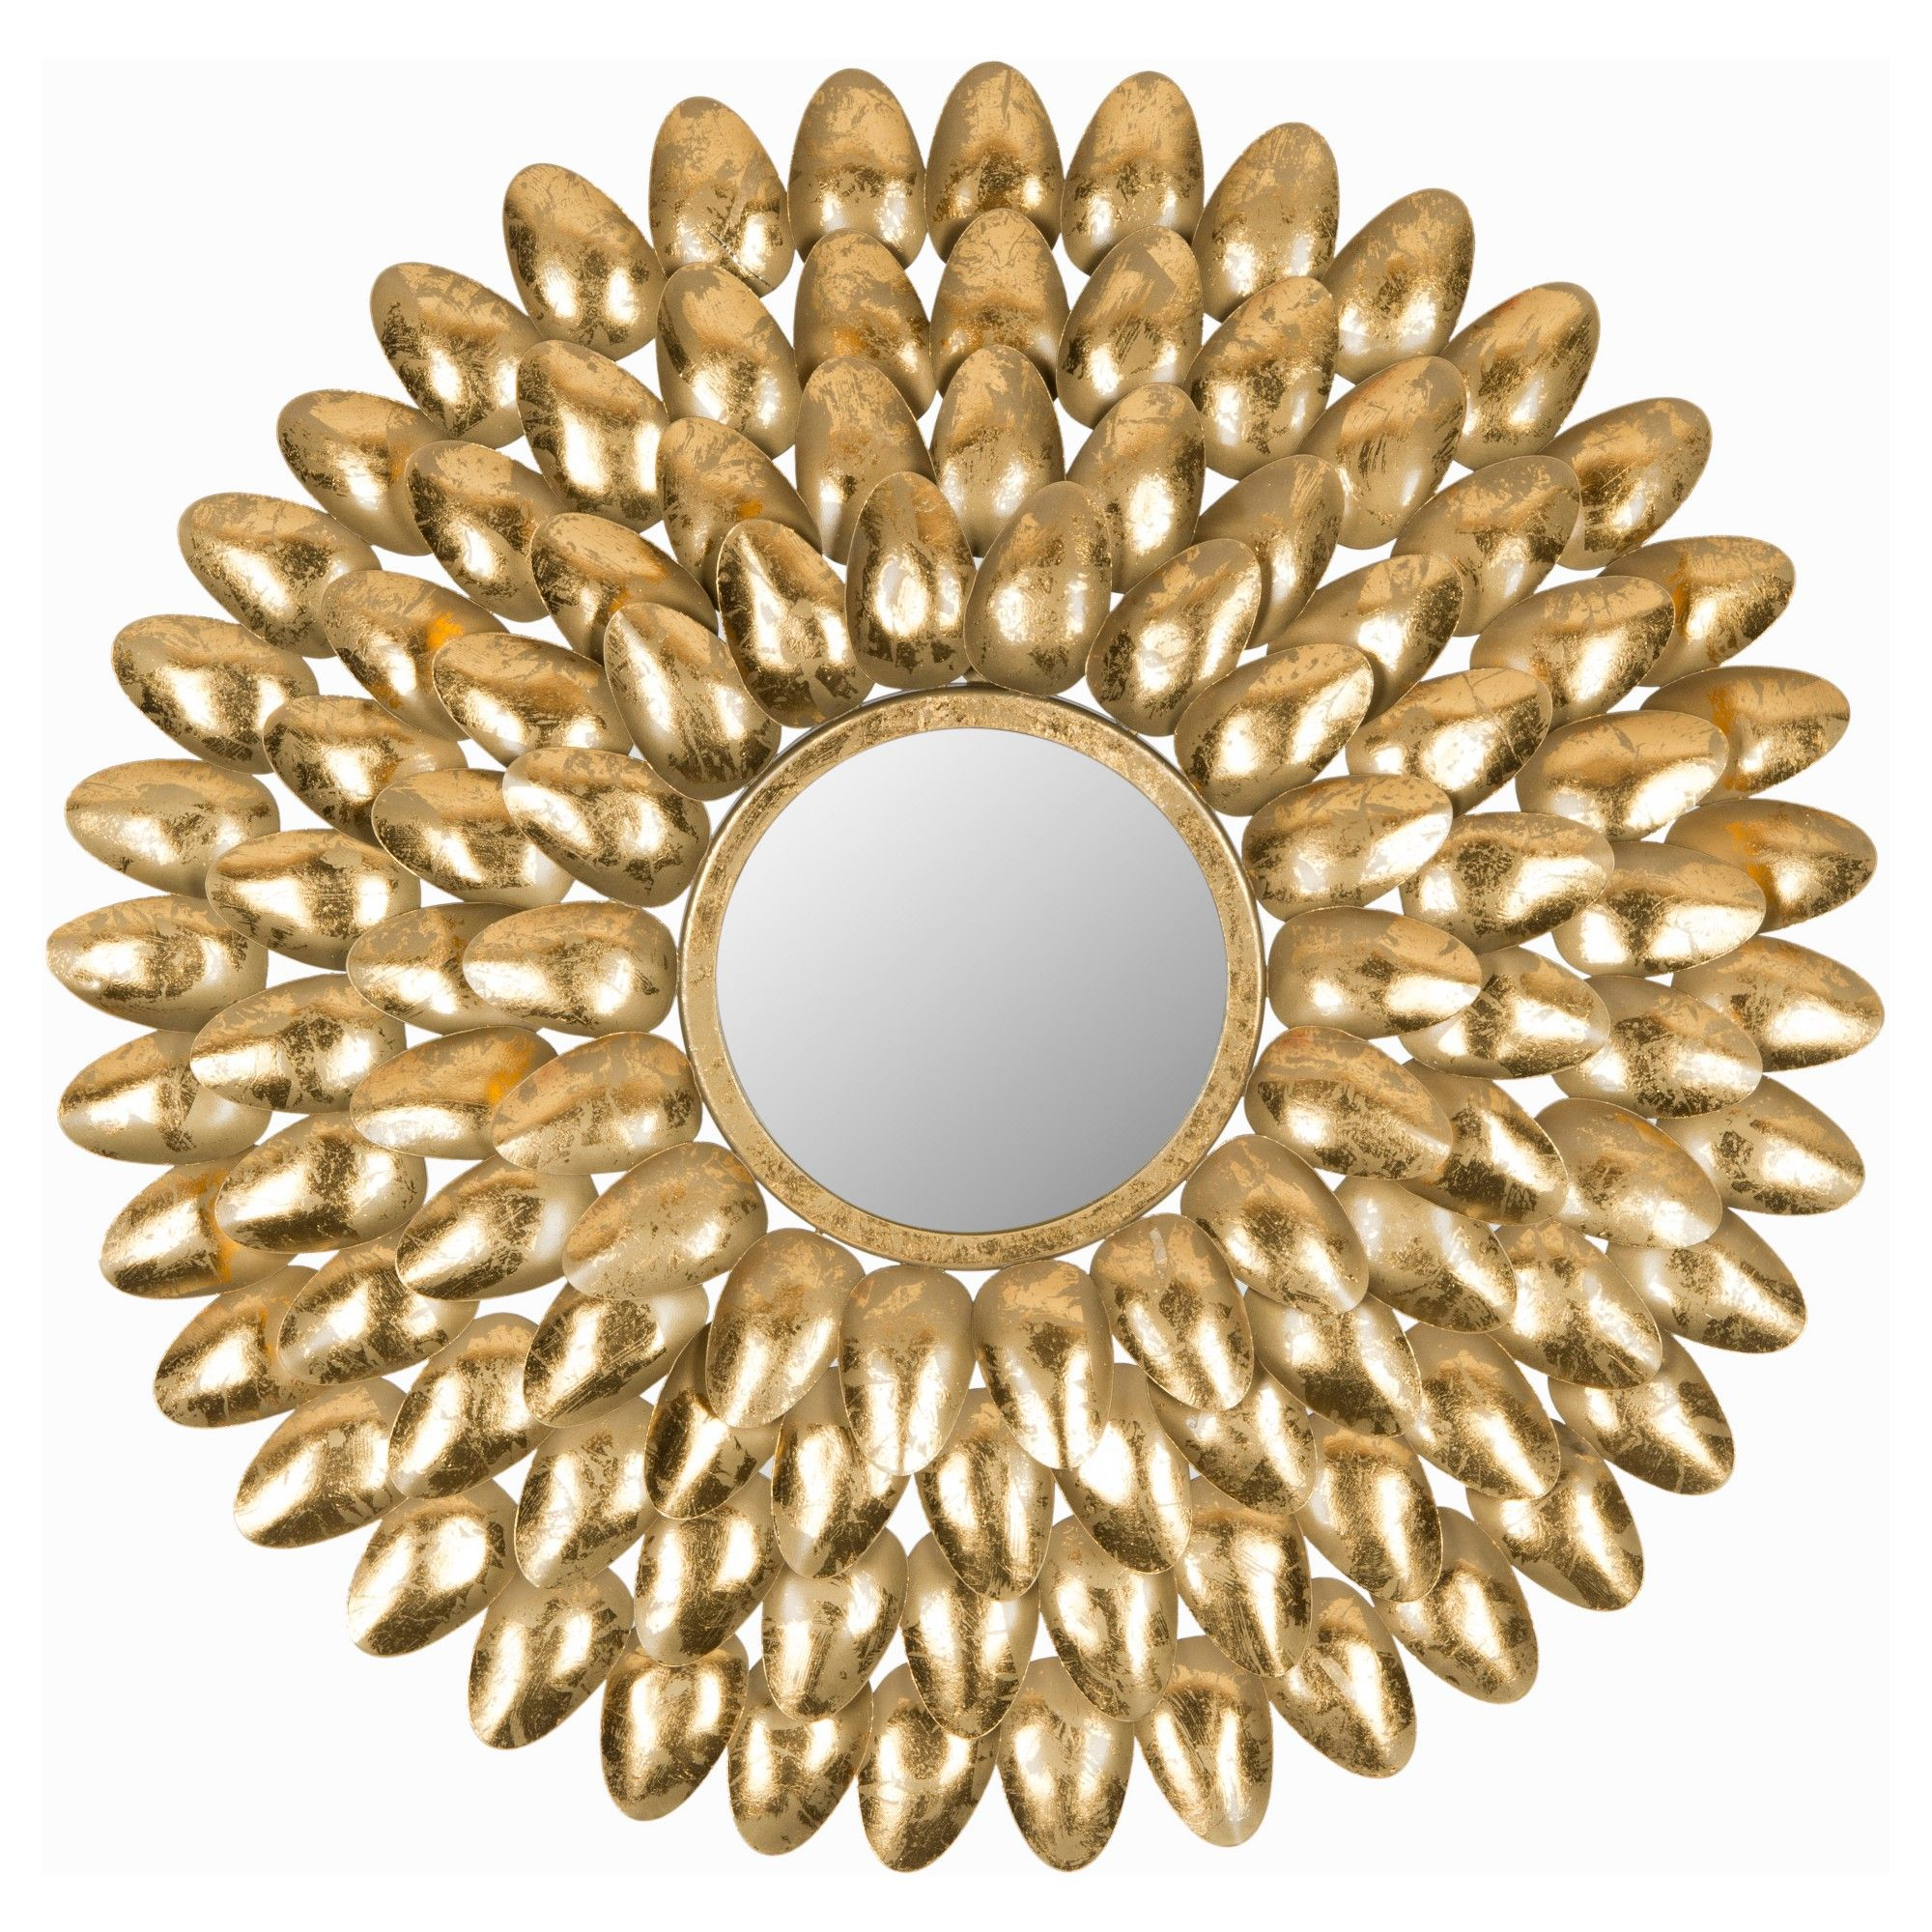 Sunburst Royal Leaf Decorative Wall Mirror - Safavieh, Gold ...